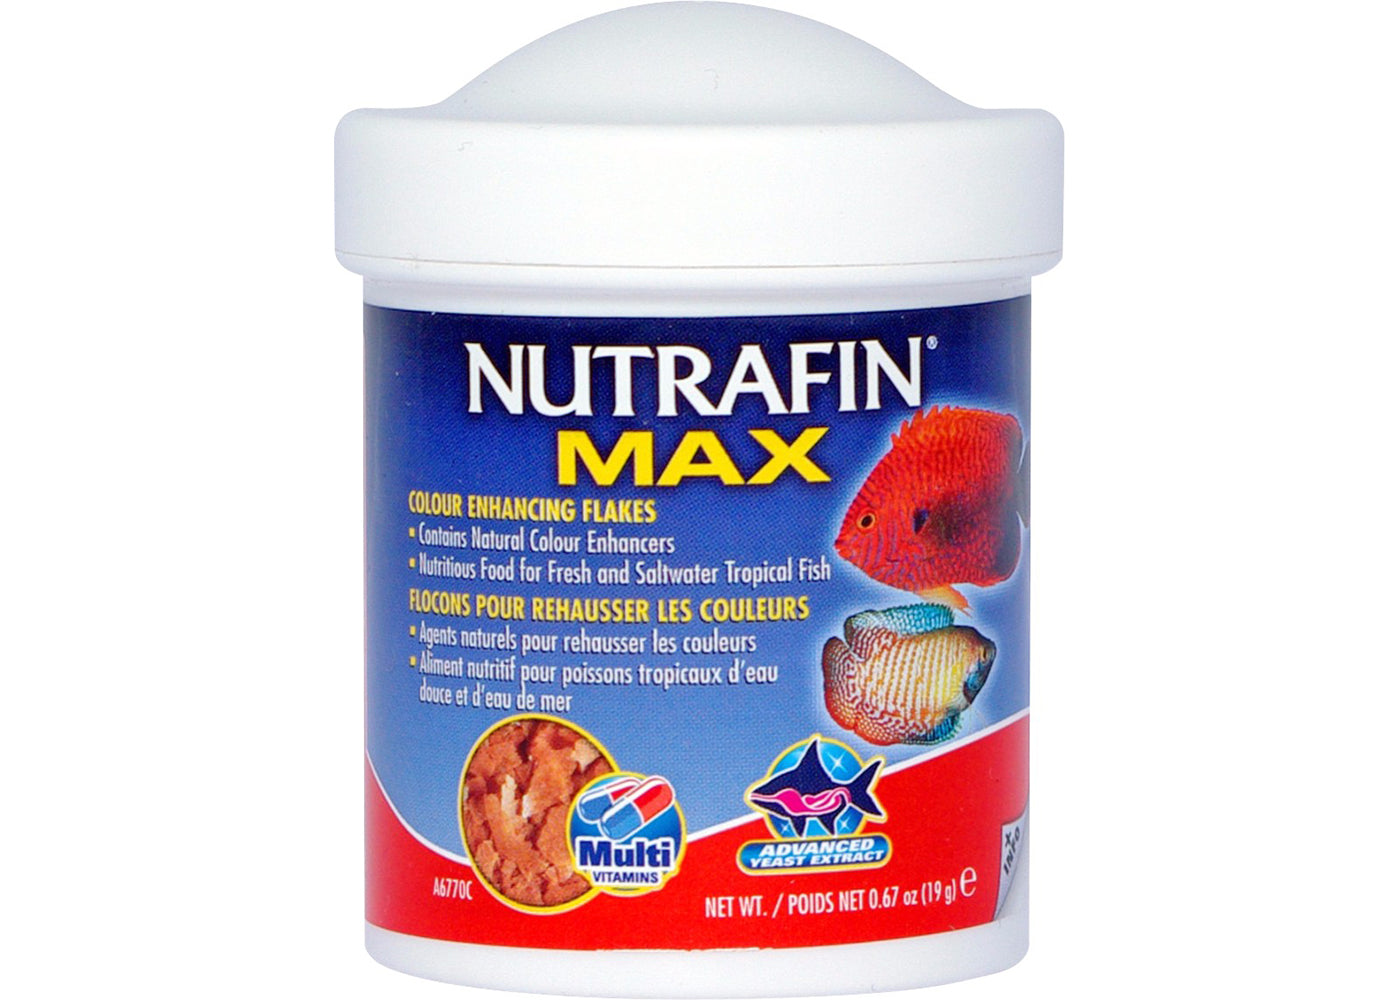 Nutrafin Max Colour Enhance Flake